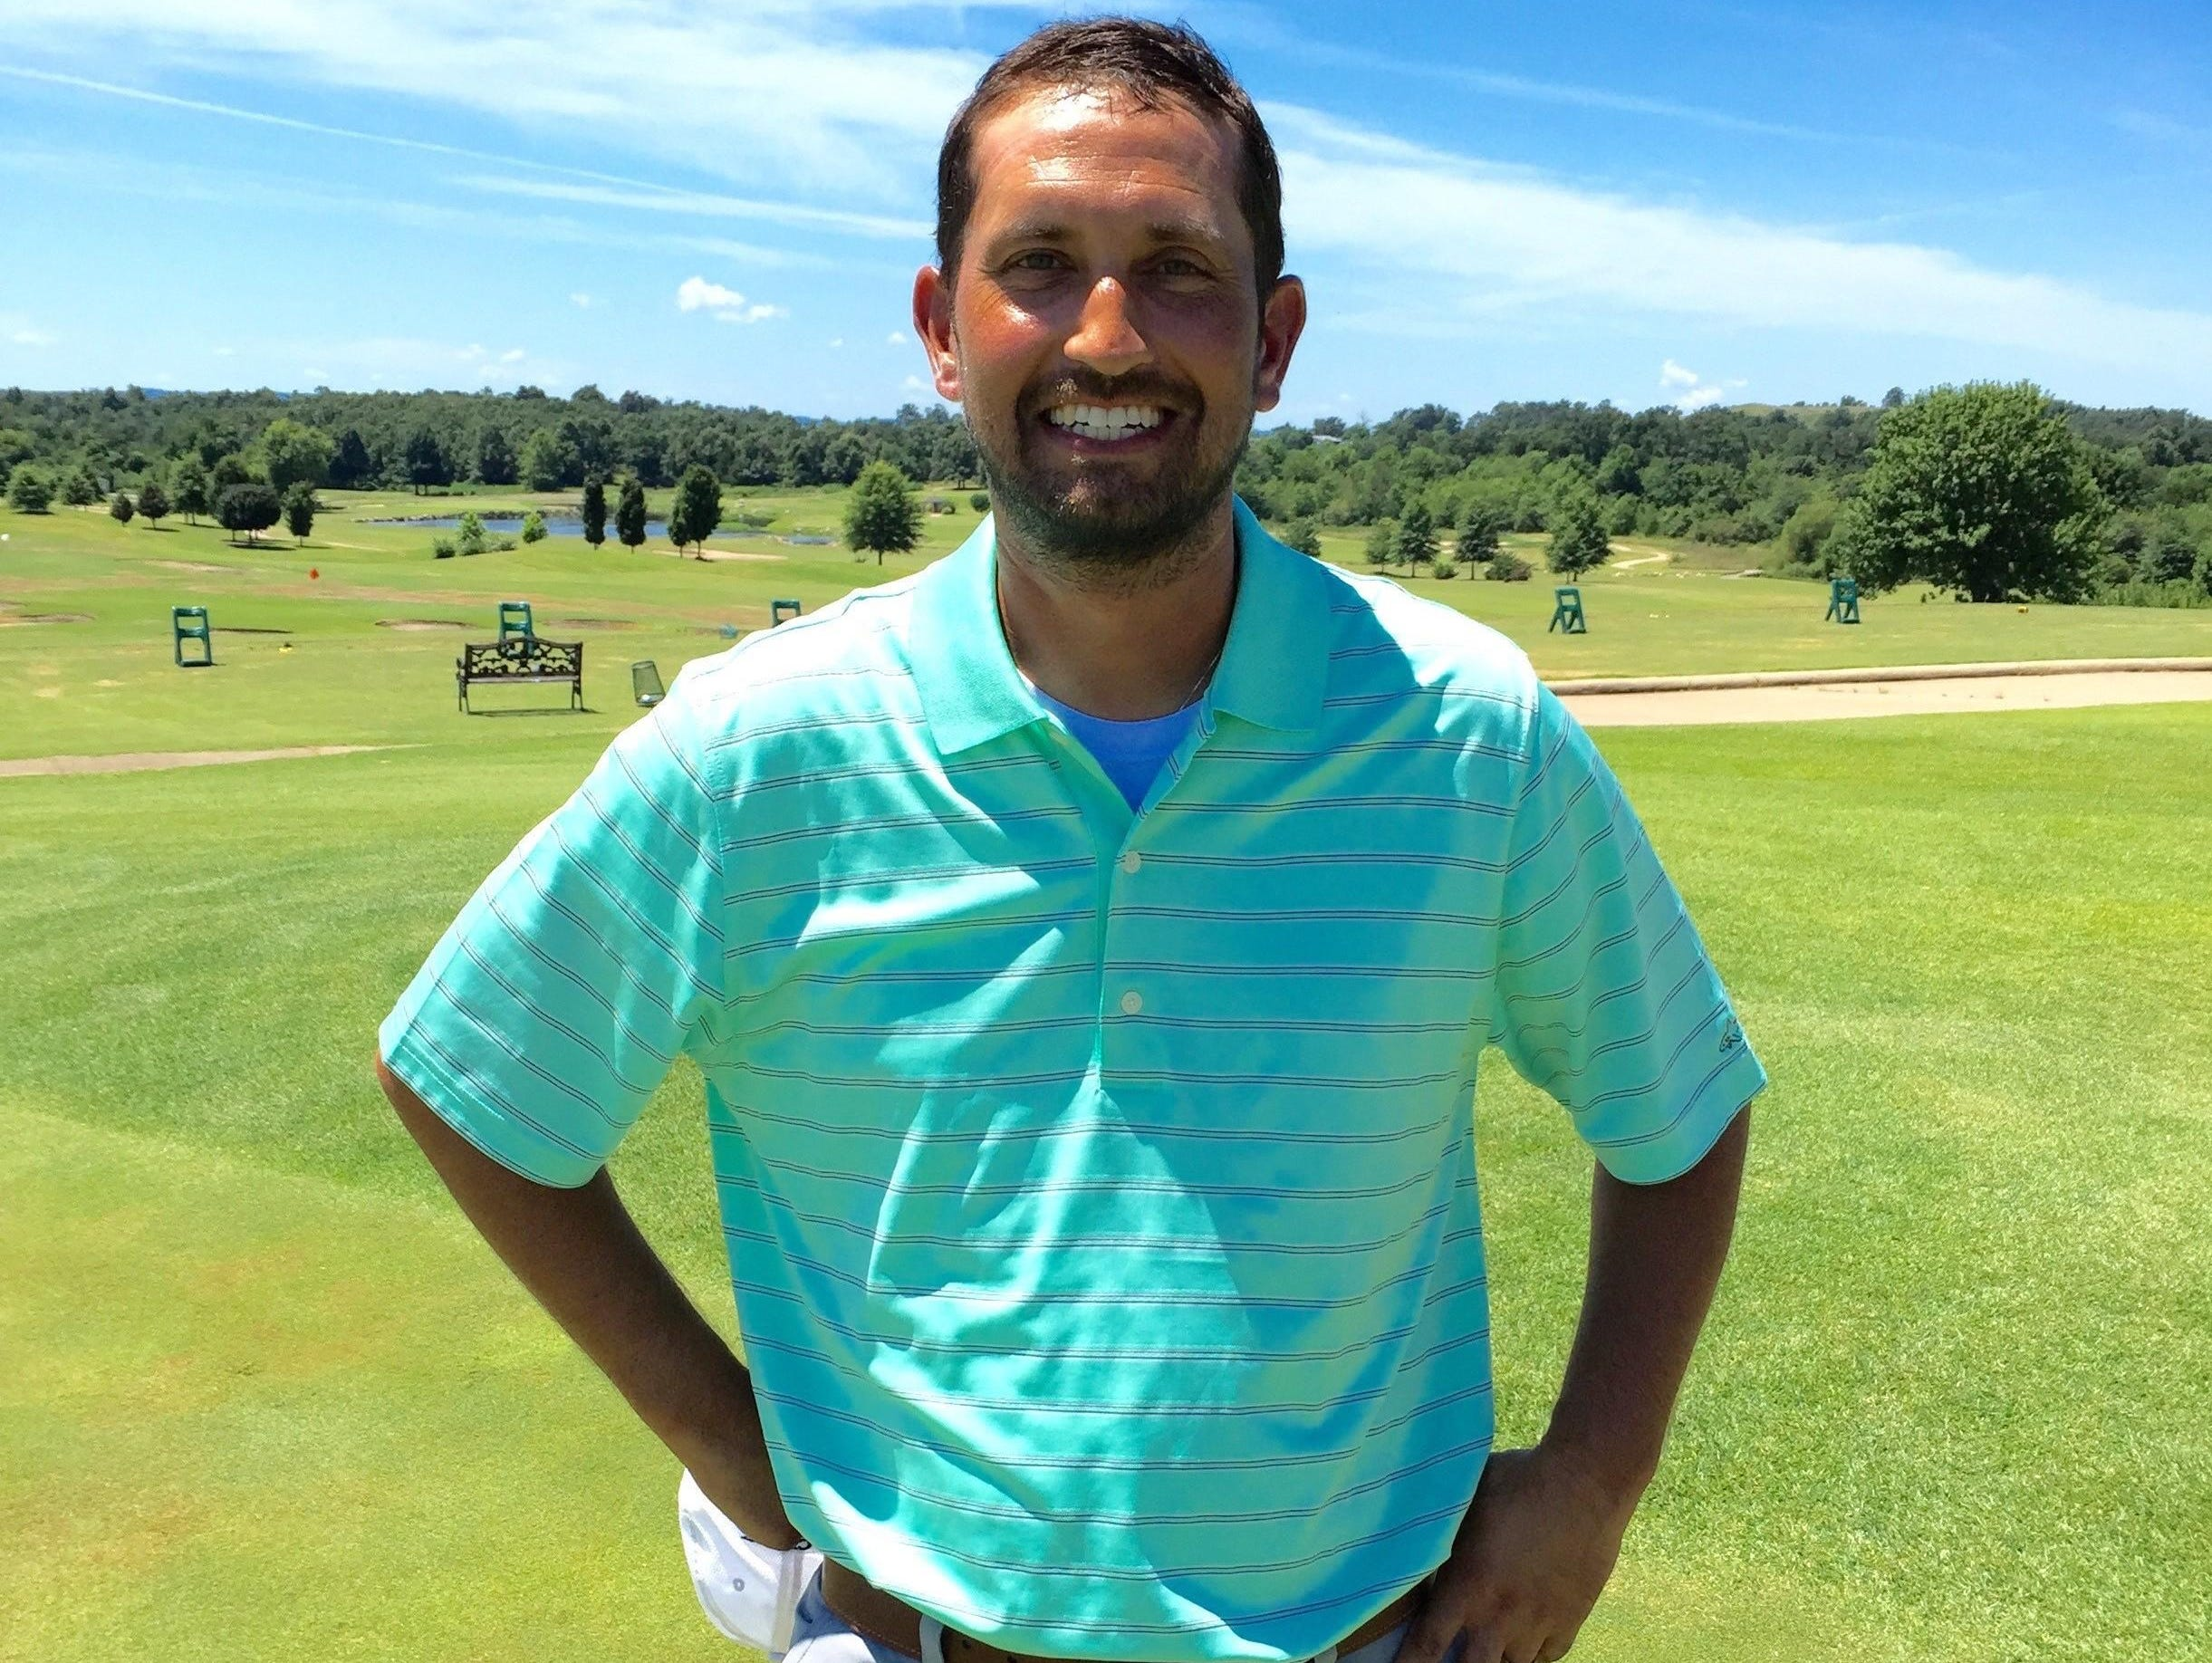 Kirk Brown recently followed up his Match Play club championship by winning the Big Creek Stroke Play Championship on Sunday at Big Creek Golf & Country Club, finishing two rounds with a 139. Matt Johnson, who also finished runner-up to Brown in the match play tournament, finished second with a two-day total of 145. Randy Costa shot a 151 to win the senior flight, and Robert Stewart won the super senior flight title with a 160.